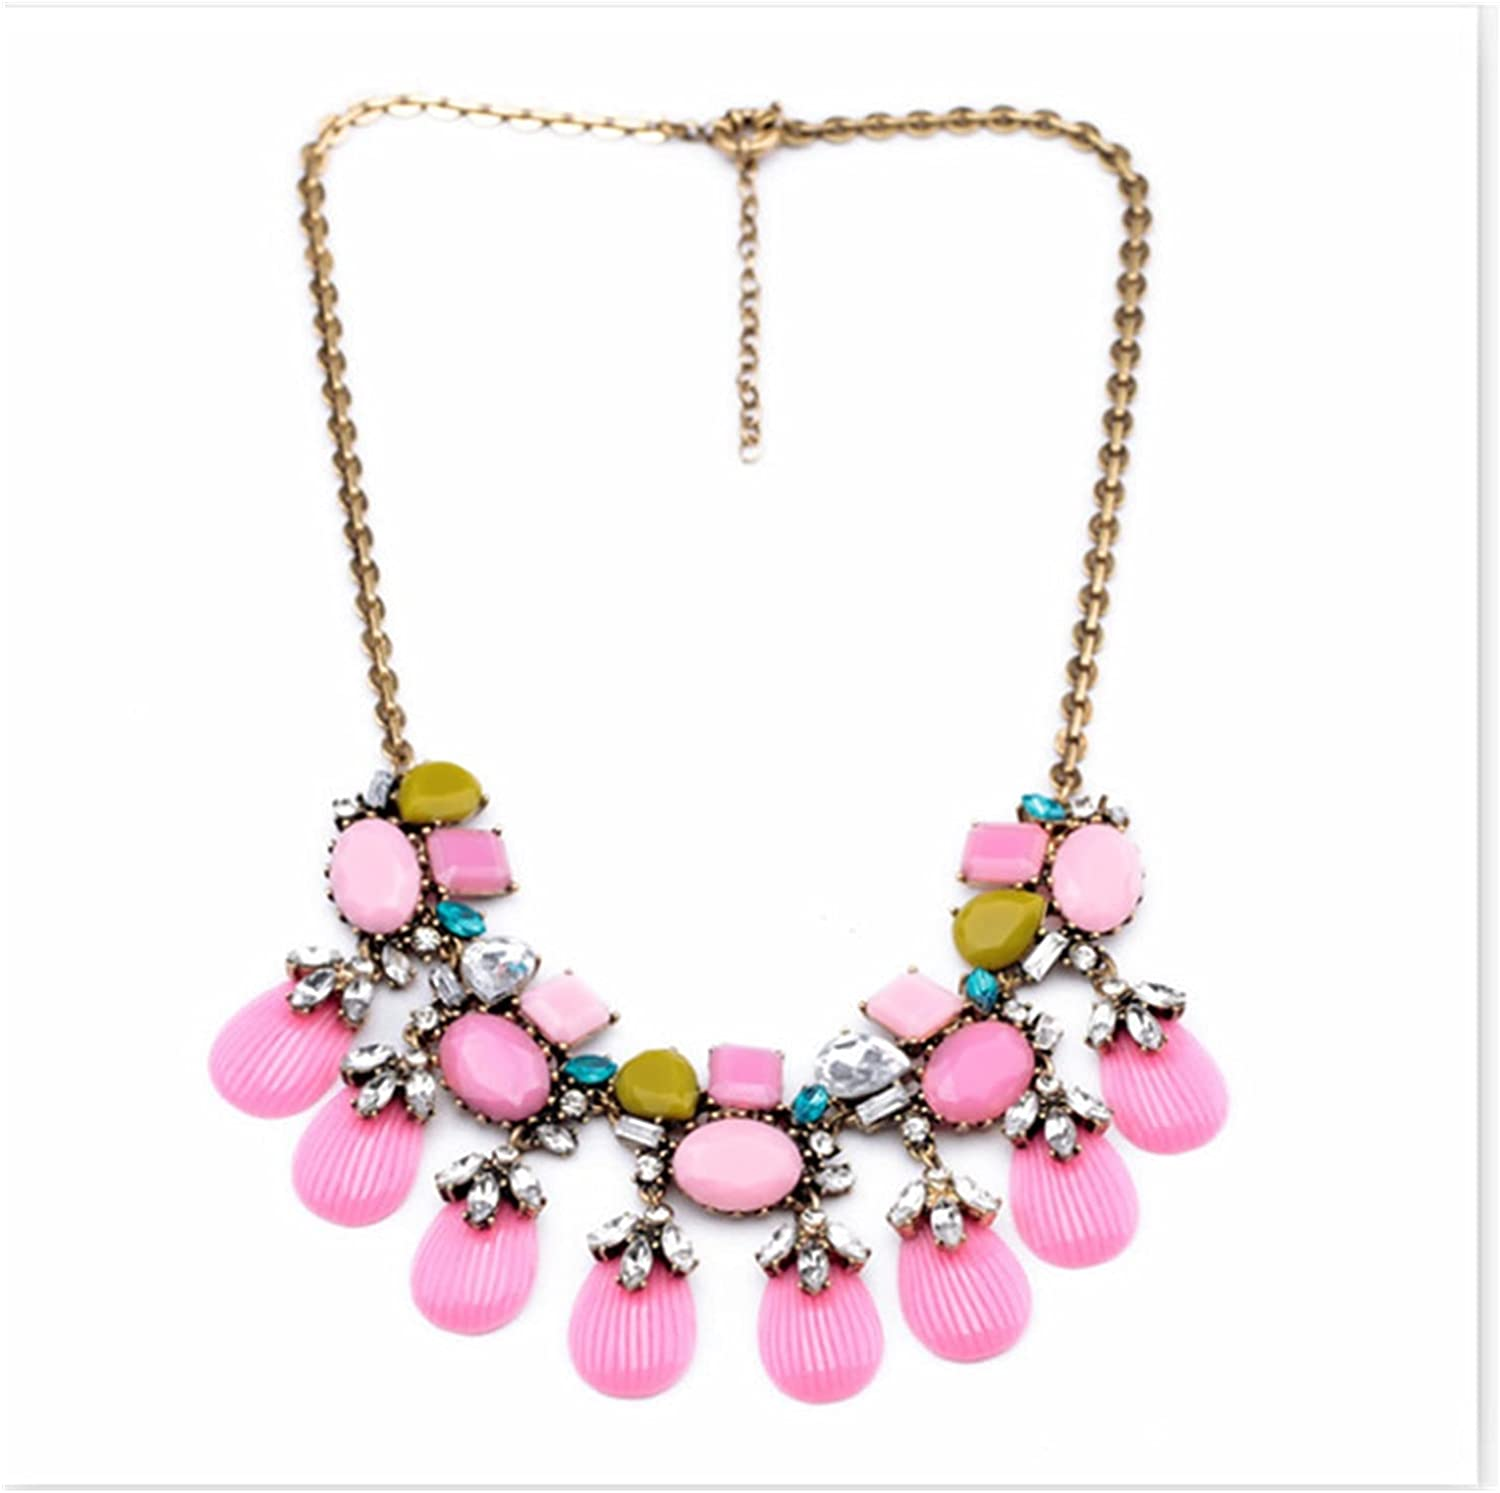 ZCPCS Challenge the lowest price of Japan 2021 Limited time cheap sale Statement Necklace for Bohemia Sweater Women Style Ne